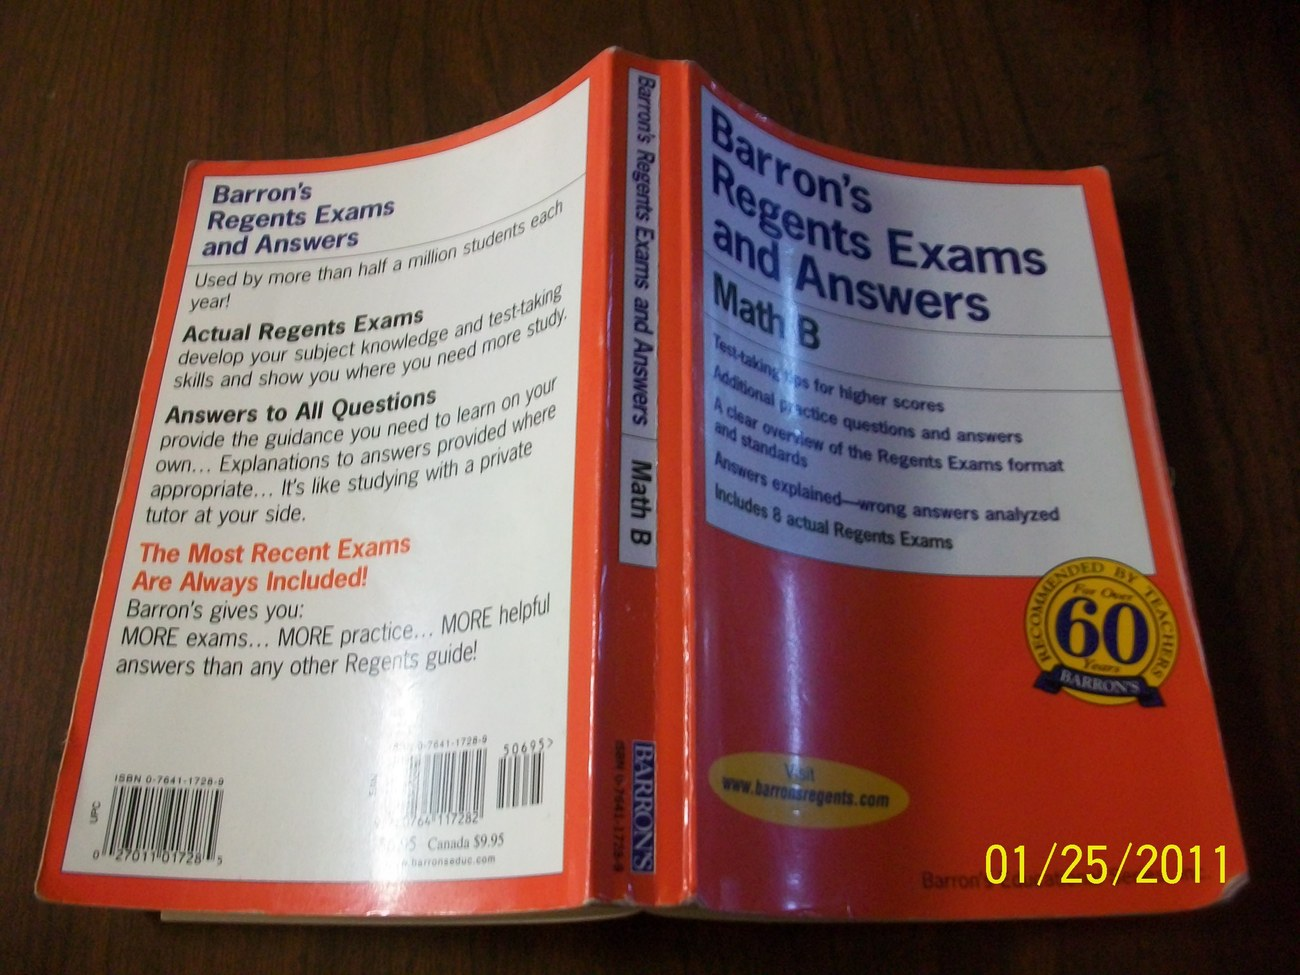 Barron's Regents Exams and Answers: Math B Paperback ISBN 0764117289   15281035